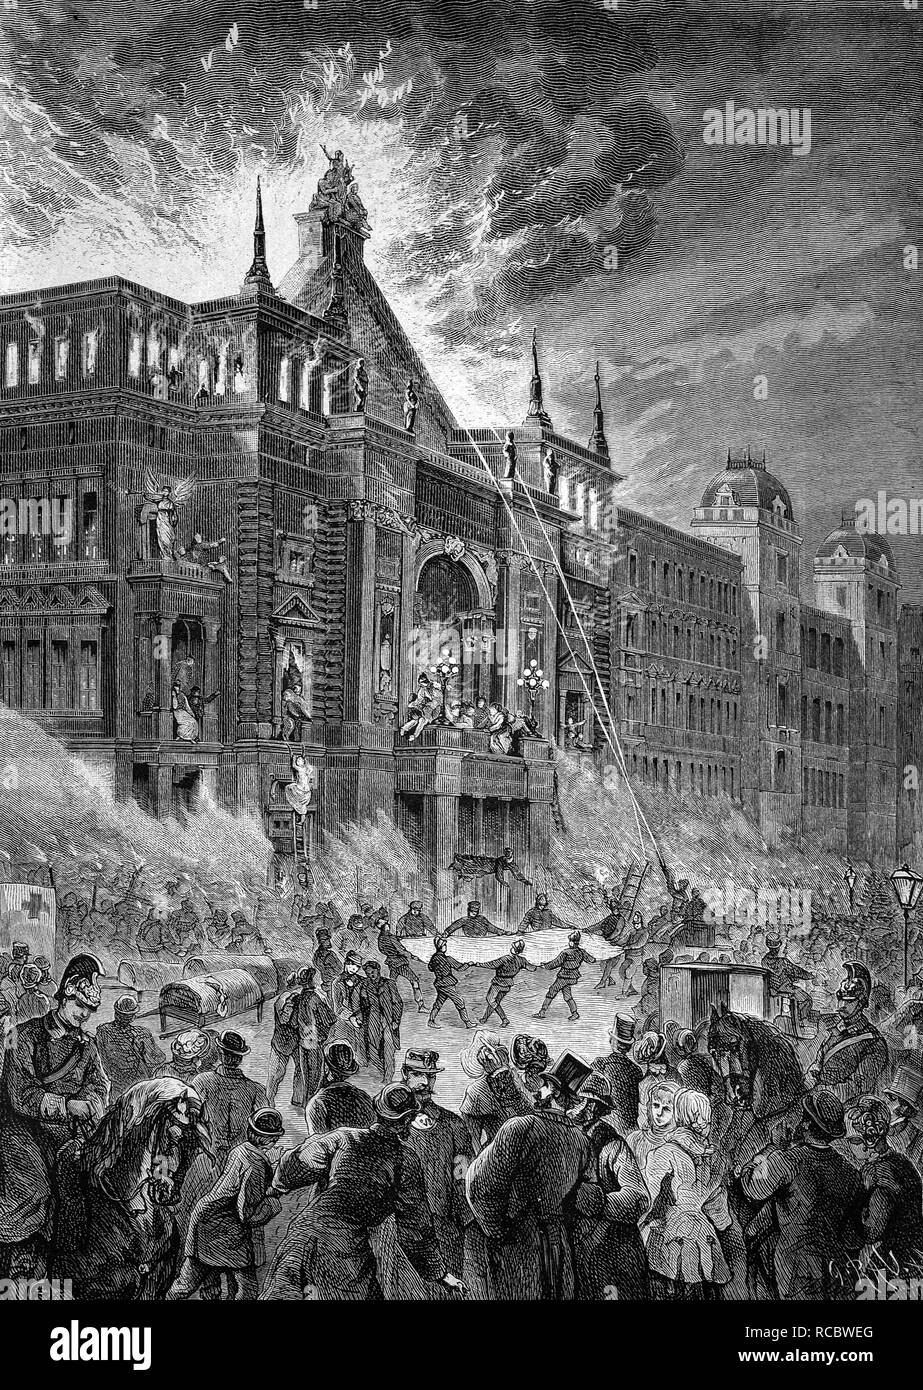 The fire at the Ringtheater theatre in Vienna on 8 December 1881, one of the largest fires of the 19th century in Austro-Hungary - Stock Image